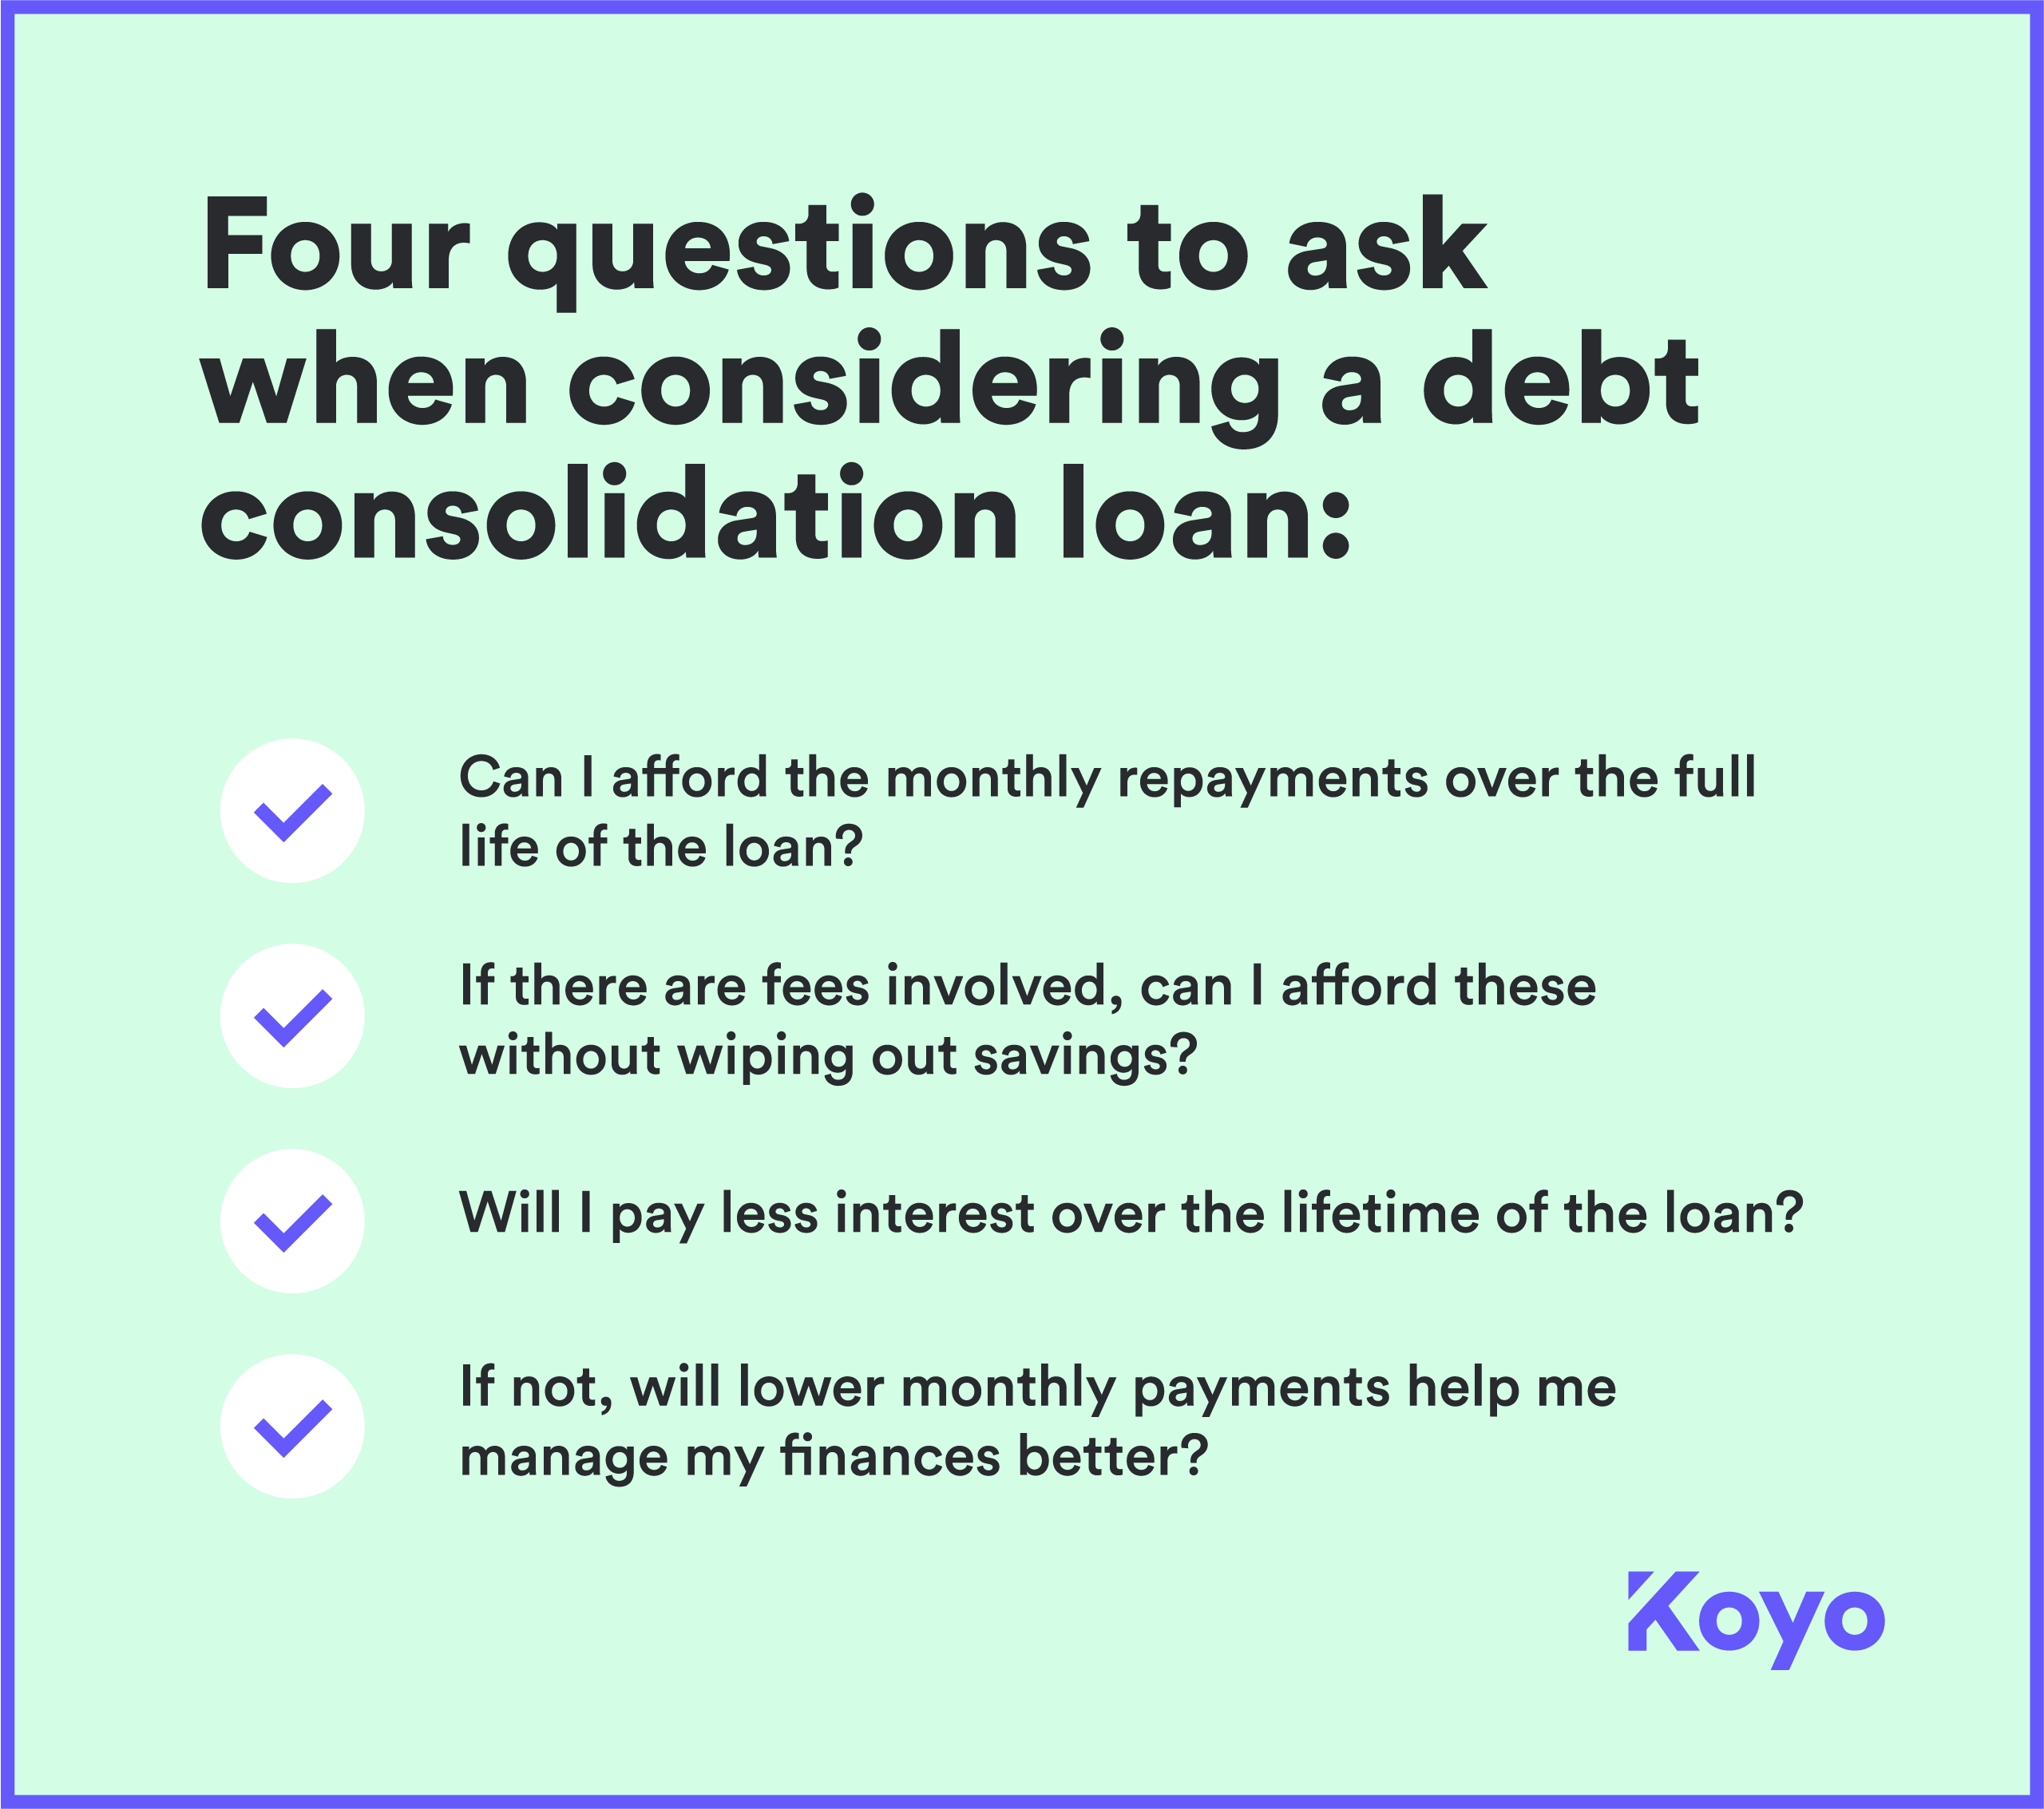 Checklist for debt consolidation